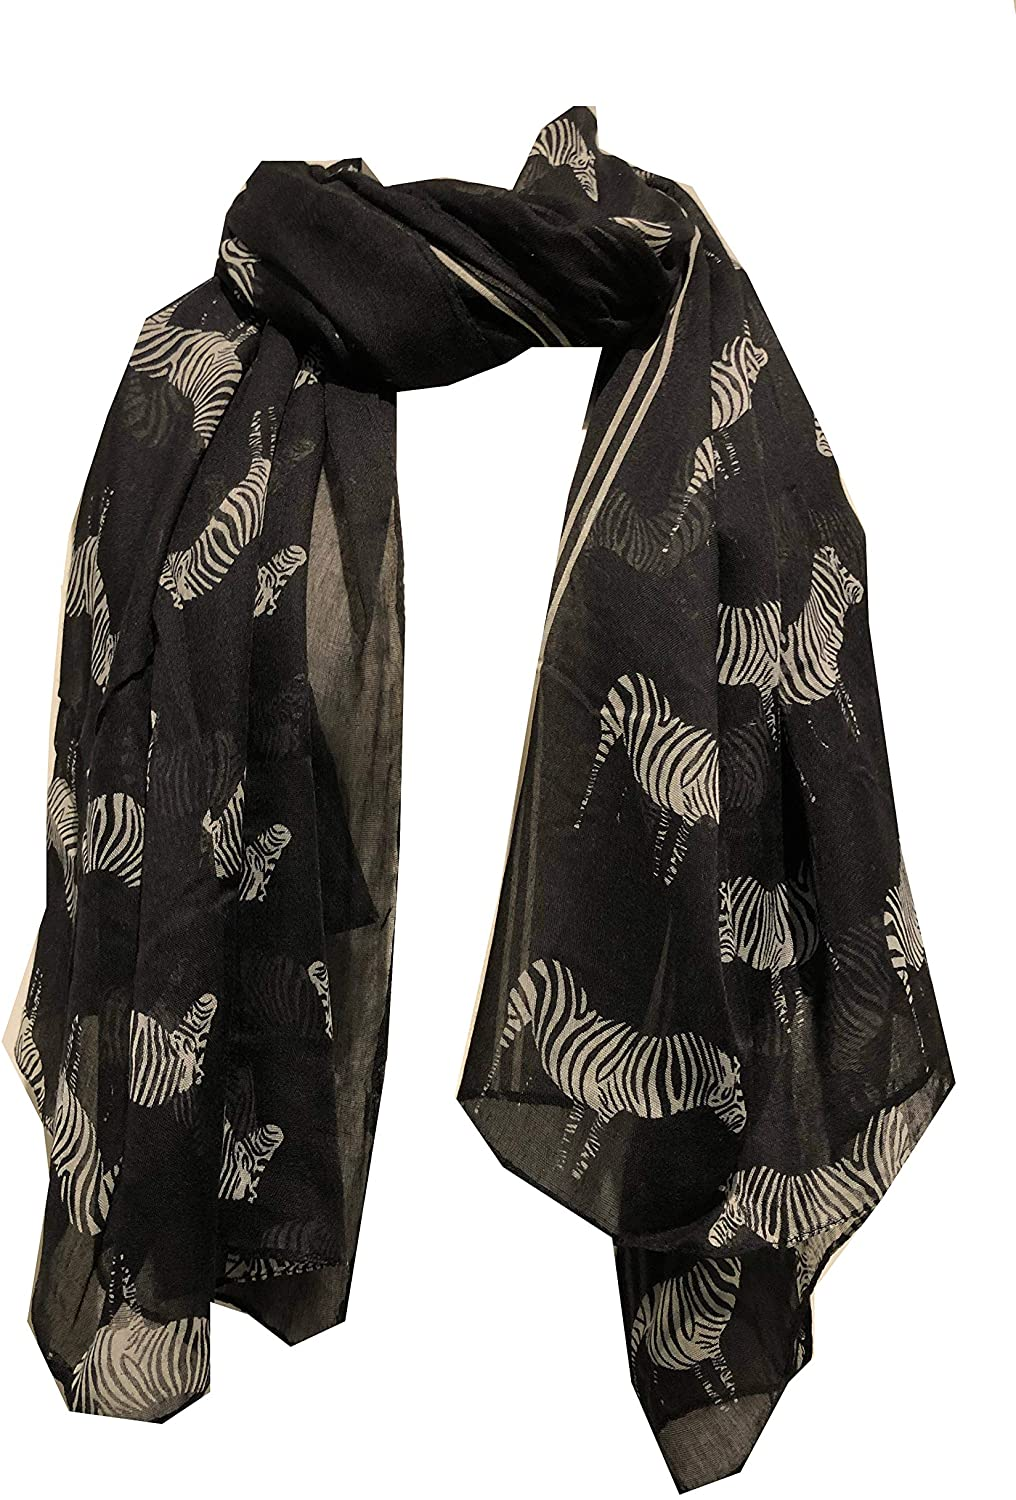 Pamper Yourself Now Black Zebra Animal Print Large Scarf Soft Summer Fashion London Fashion Fab Gift